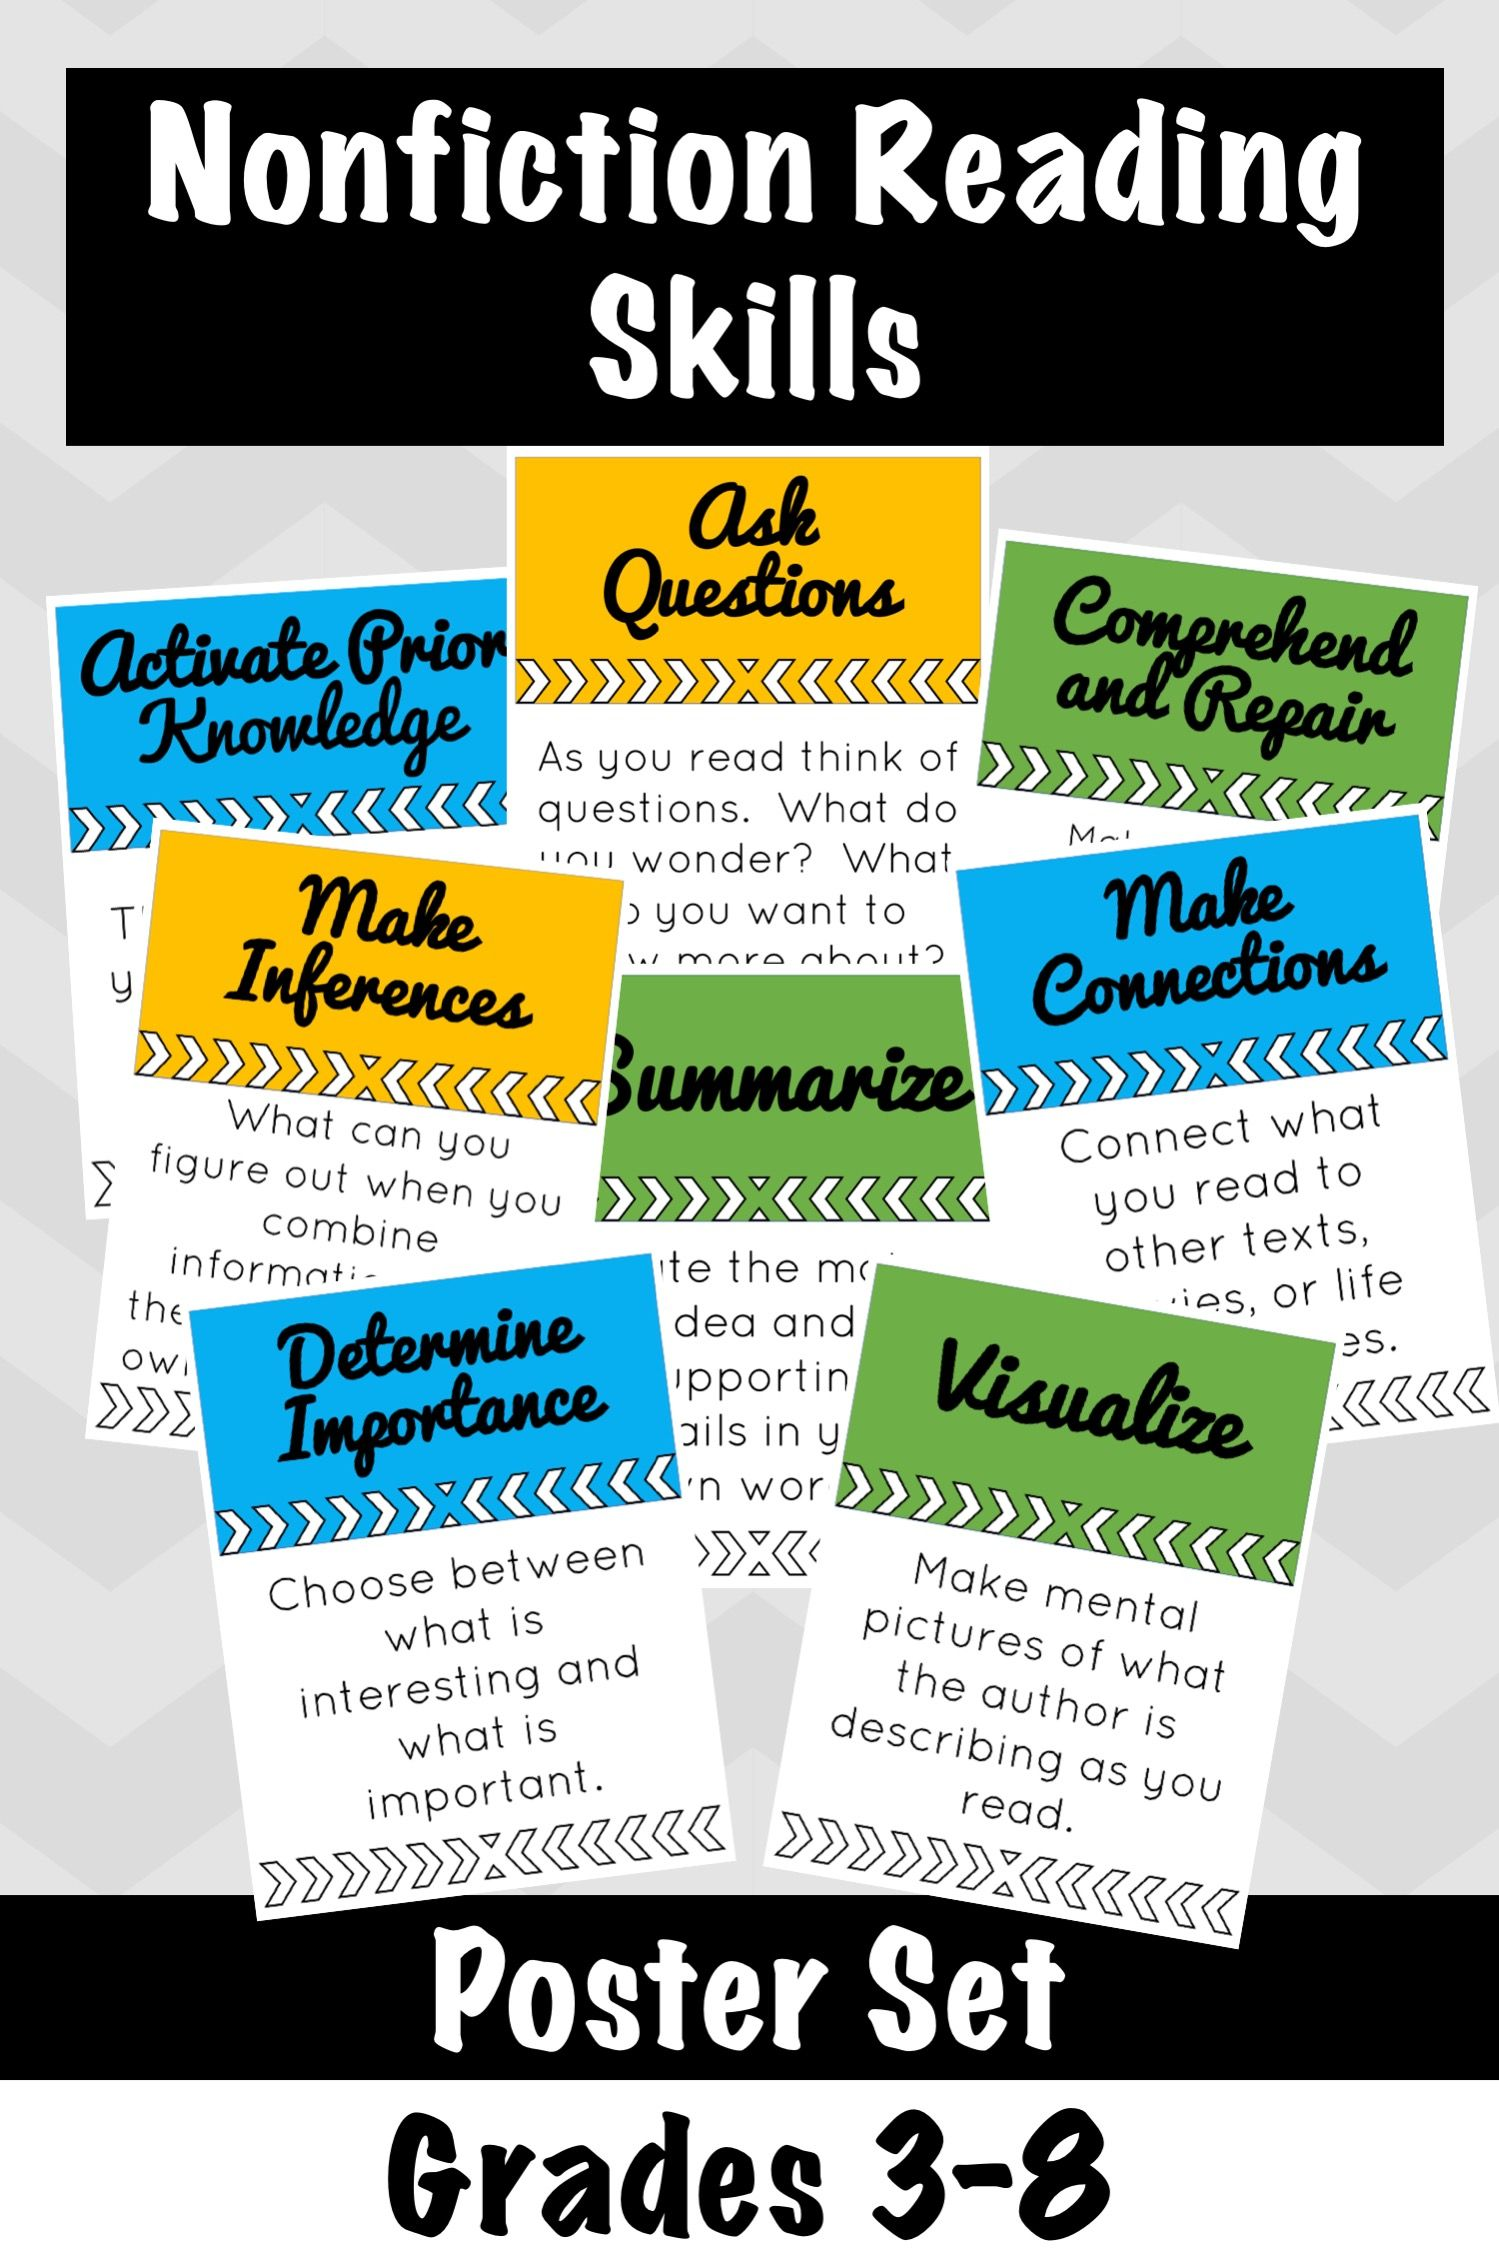 Nonfiction Reading Skill Posters